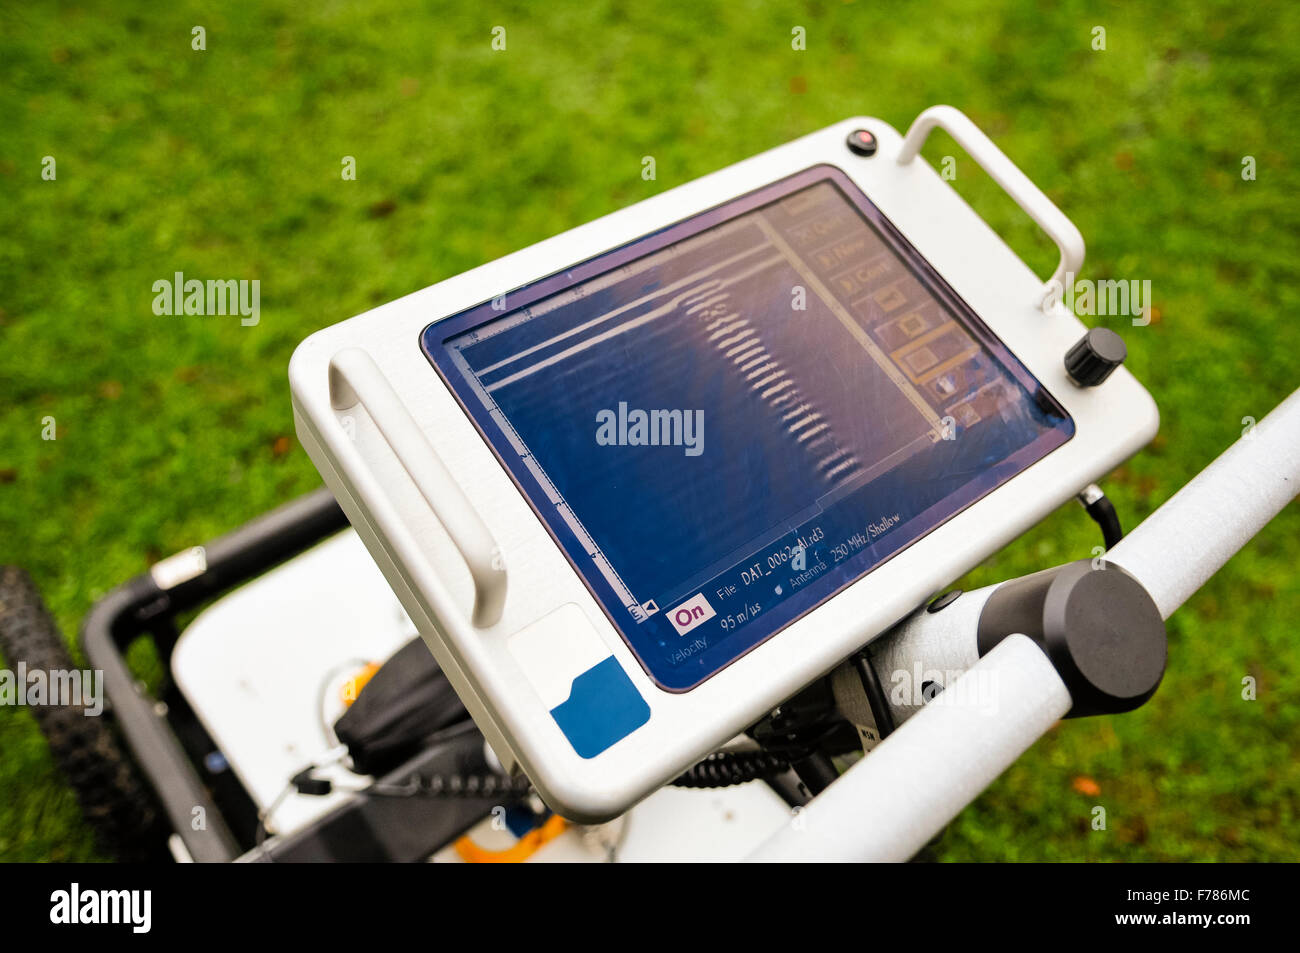 Northern Ireland. 26th November, 2015. A Ground Penetrating Radar mounted on wheels, used to survey below the ground - Stock Image